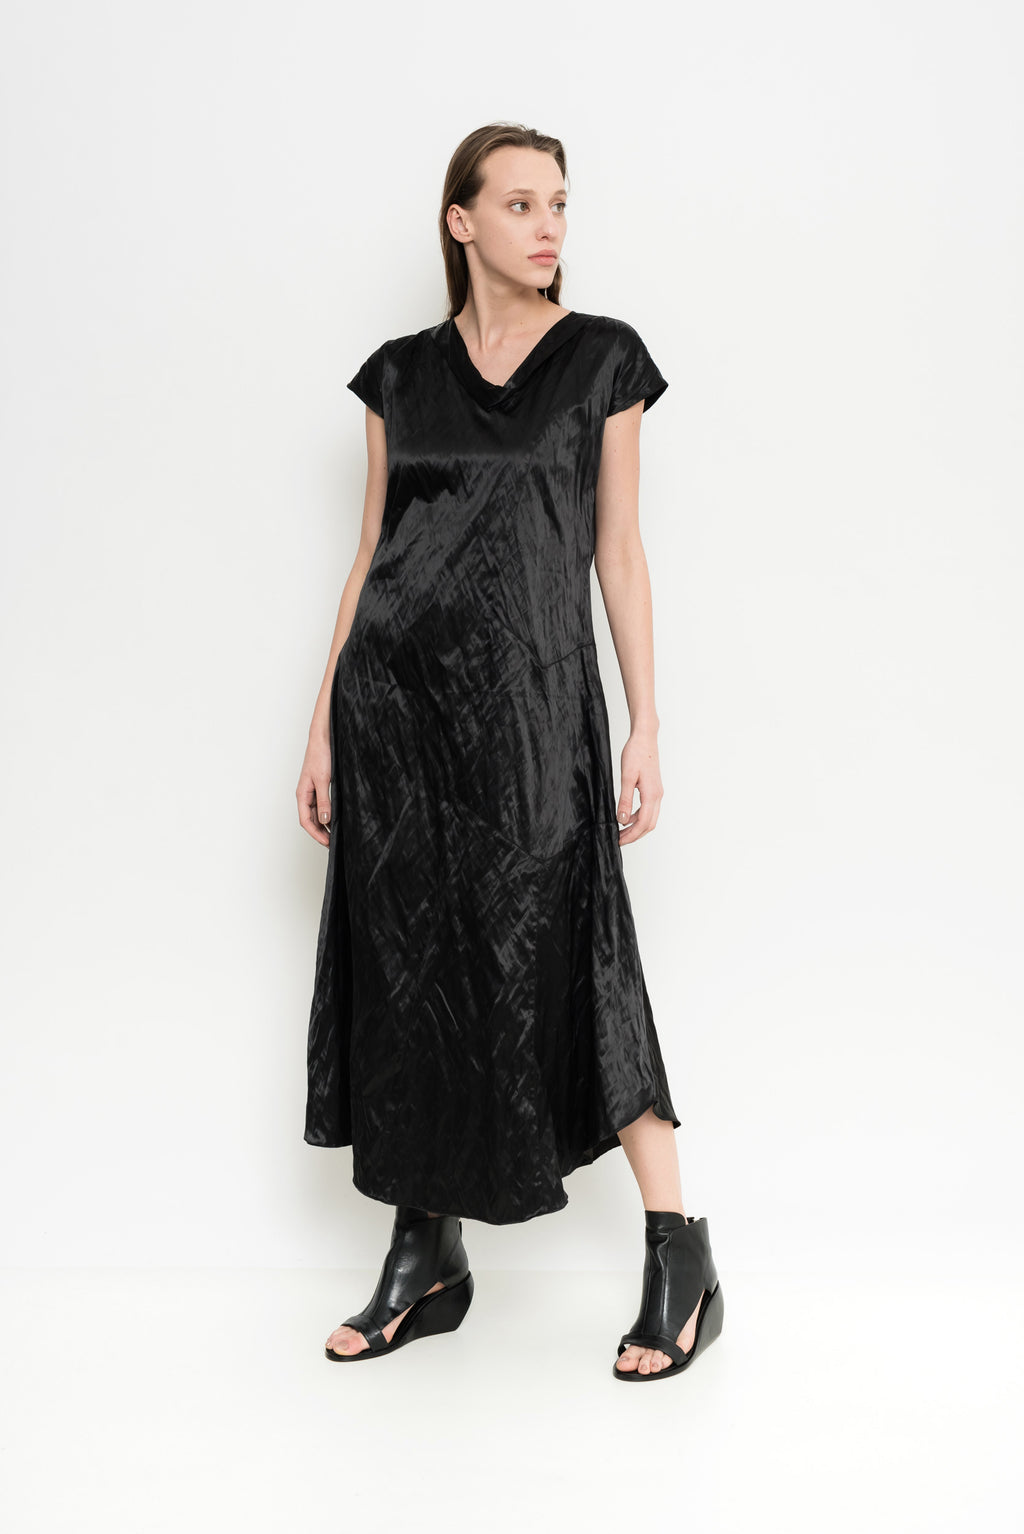 Satin Wrinkled Short Sleeve Dress | Belize